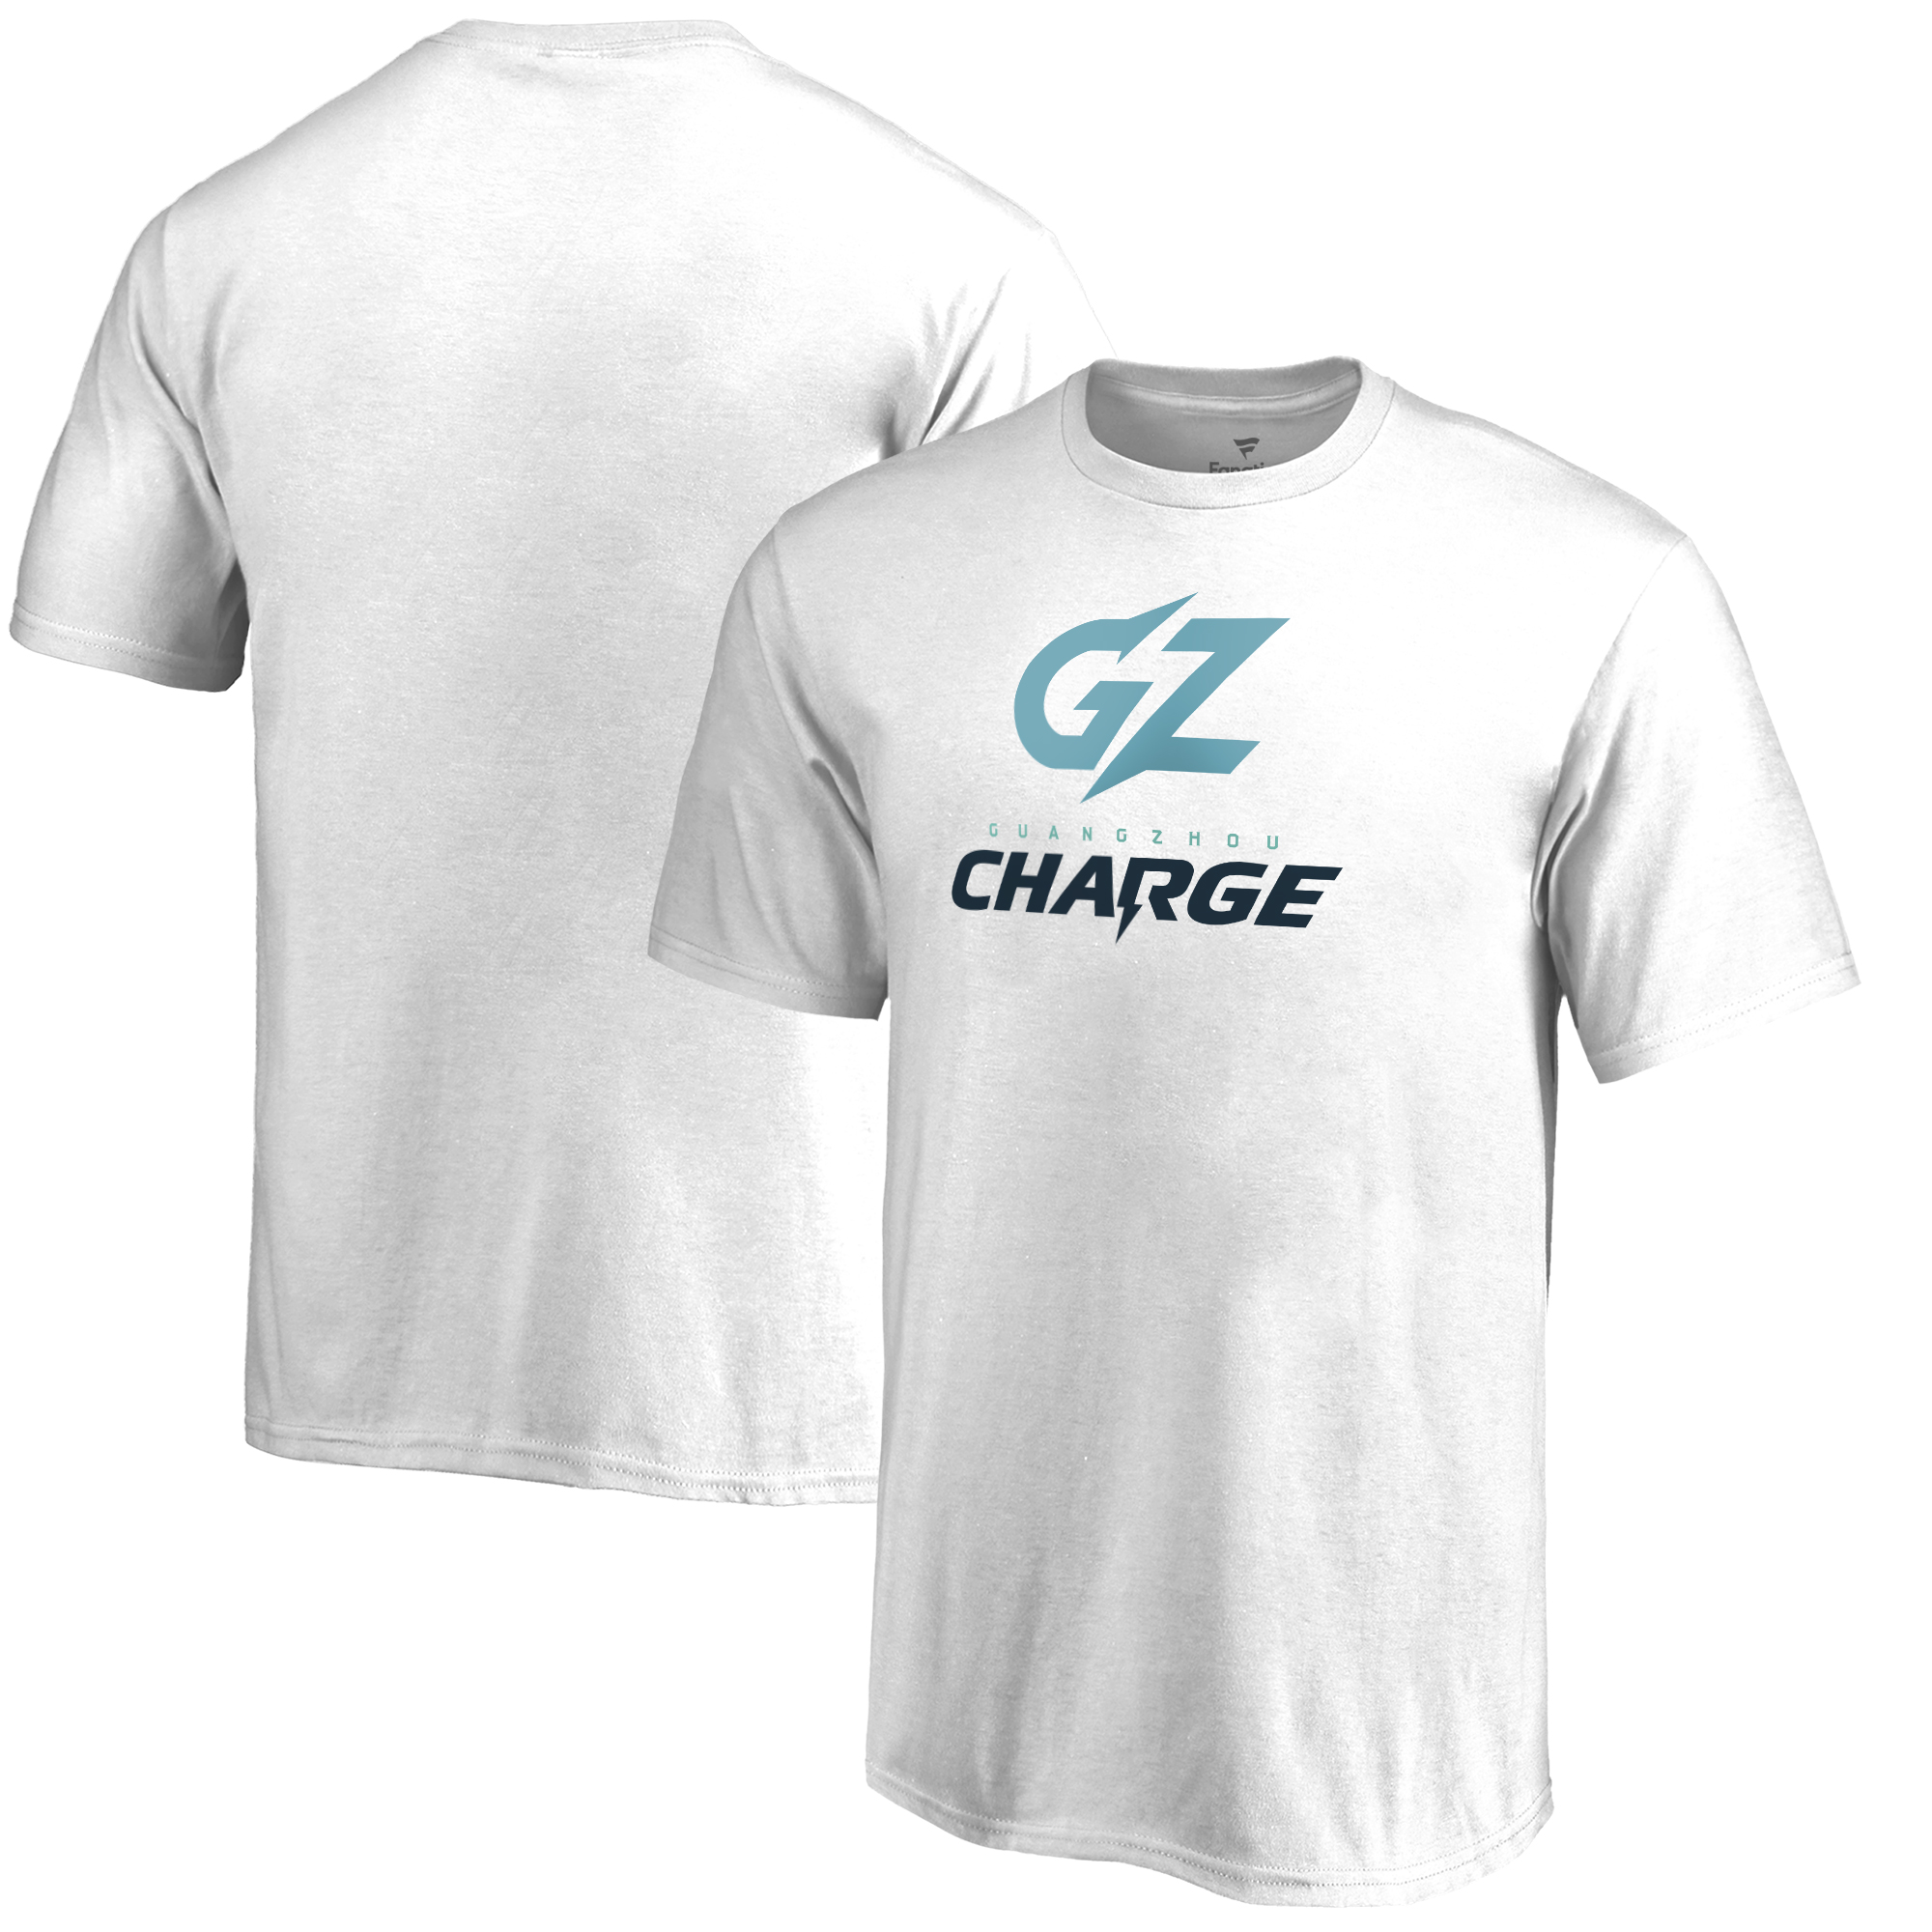 Guangzhou Charge Fanatics Branded Youth Team Identity T-Shirt - White